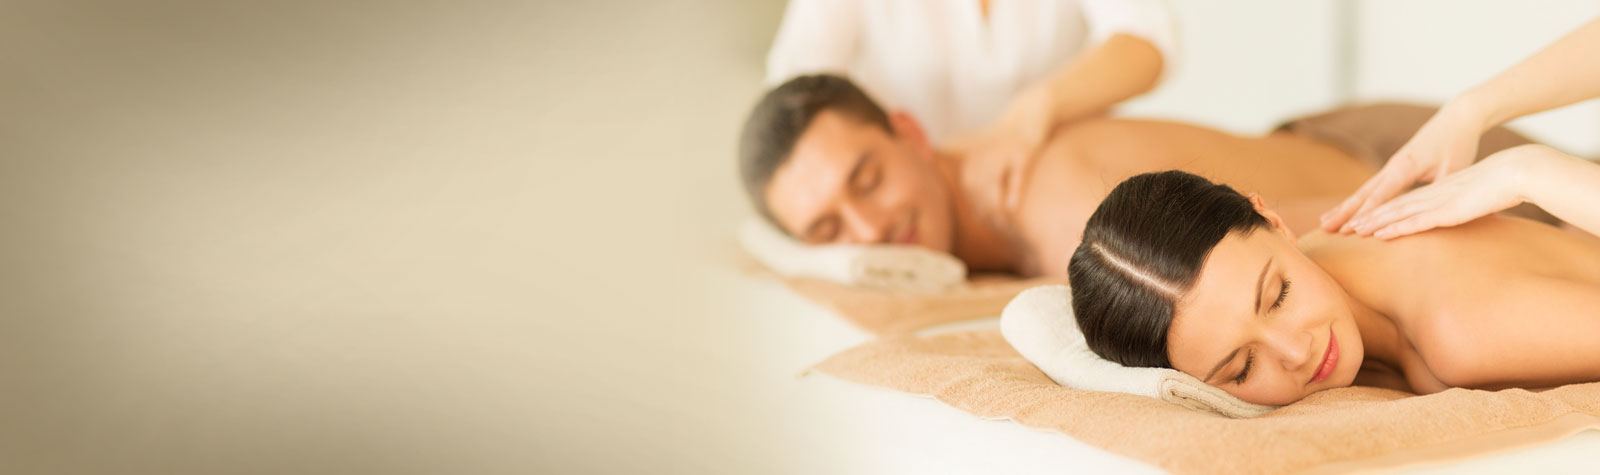 Couples Massage Nashua NH